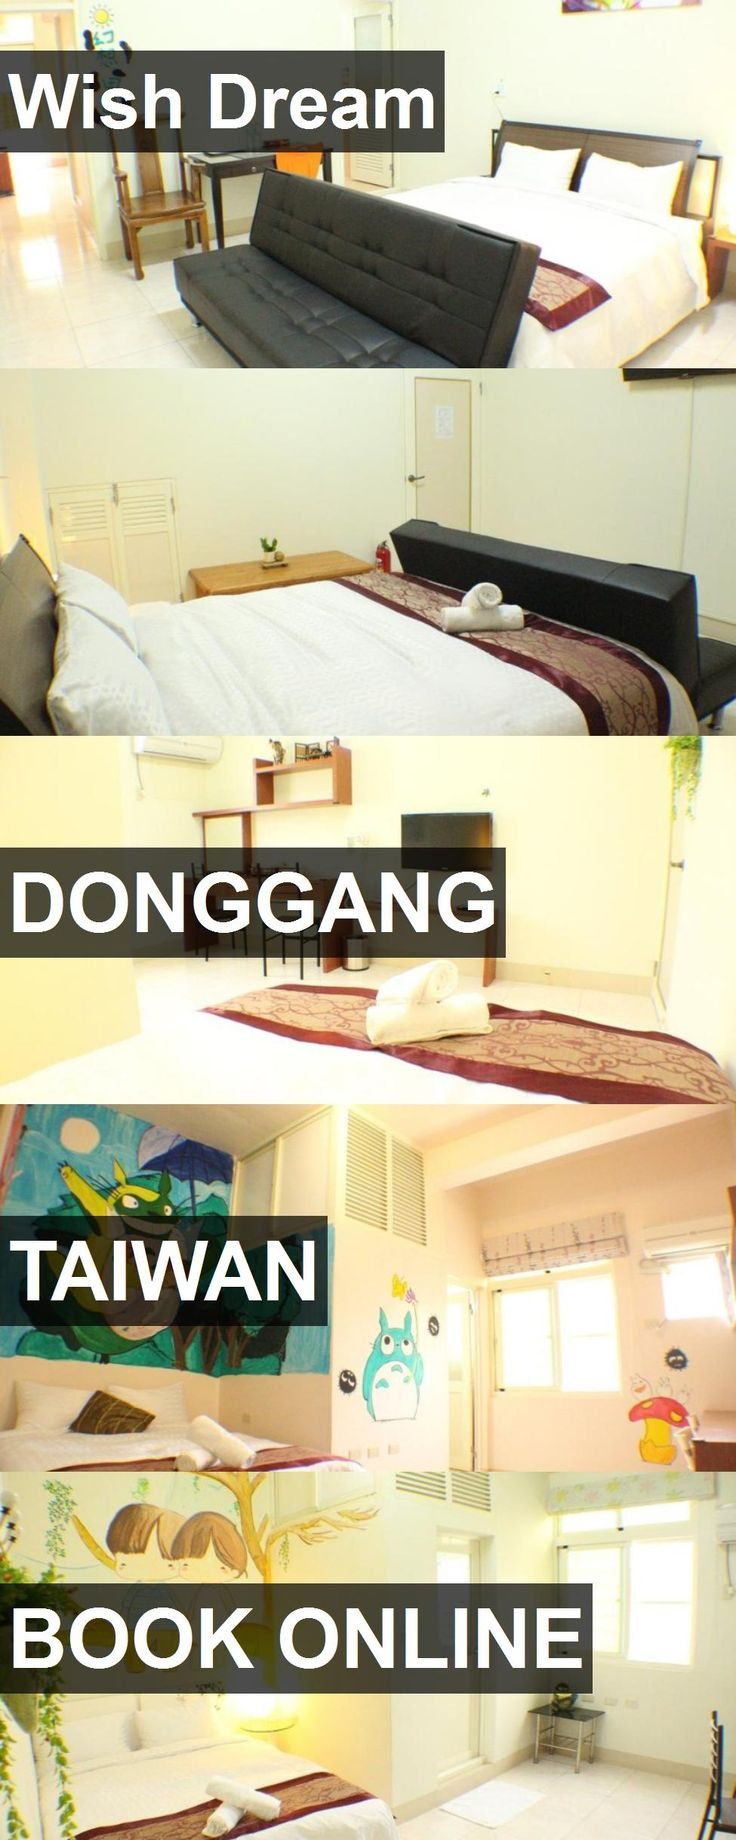 Hotel Wish Dream in Donggang, Taiwan. For more information, photos, reviews and best prices please follow the link. #Taiwan #Donggang #WishDream #hotel #travel #vacation